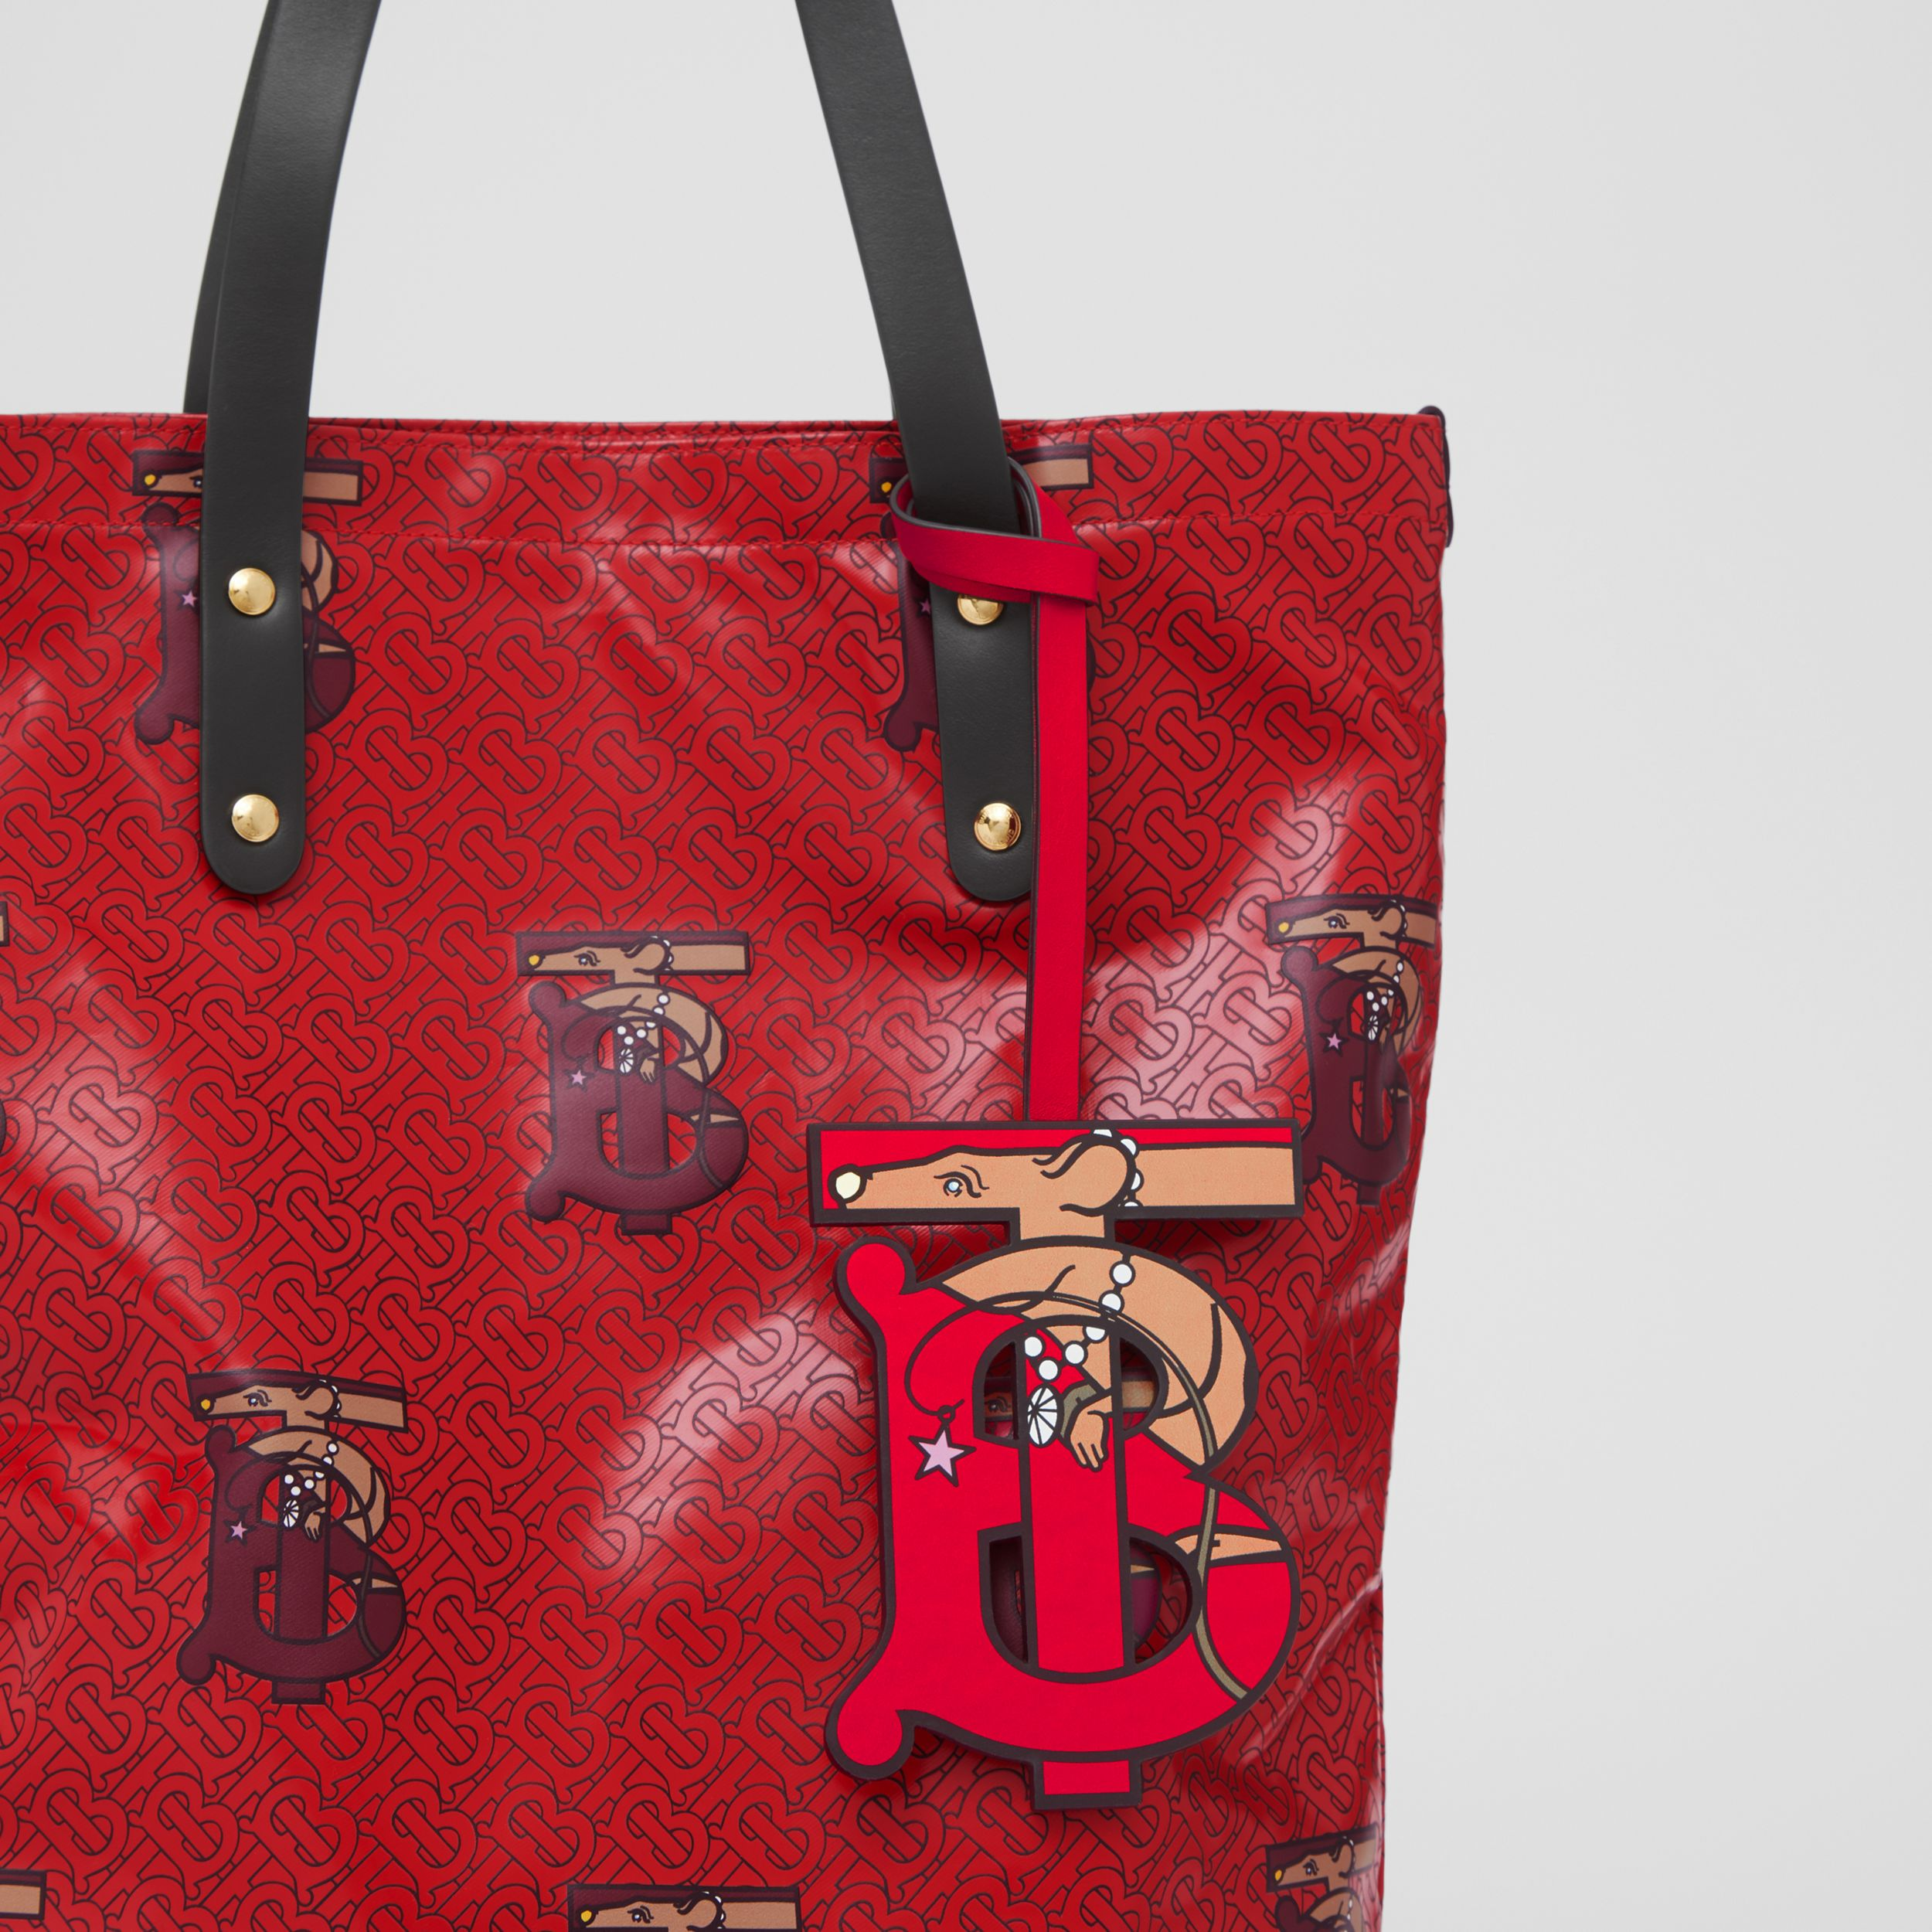 Monogram Motif Leather Charm in Red | Burberry - 4